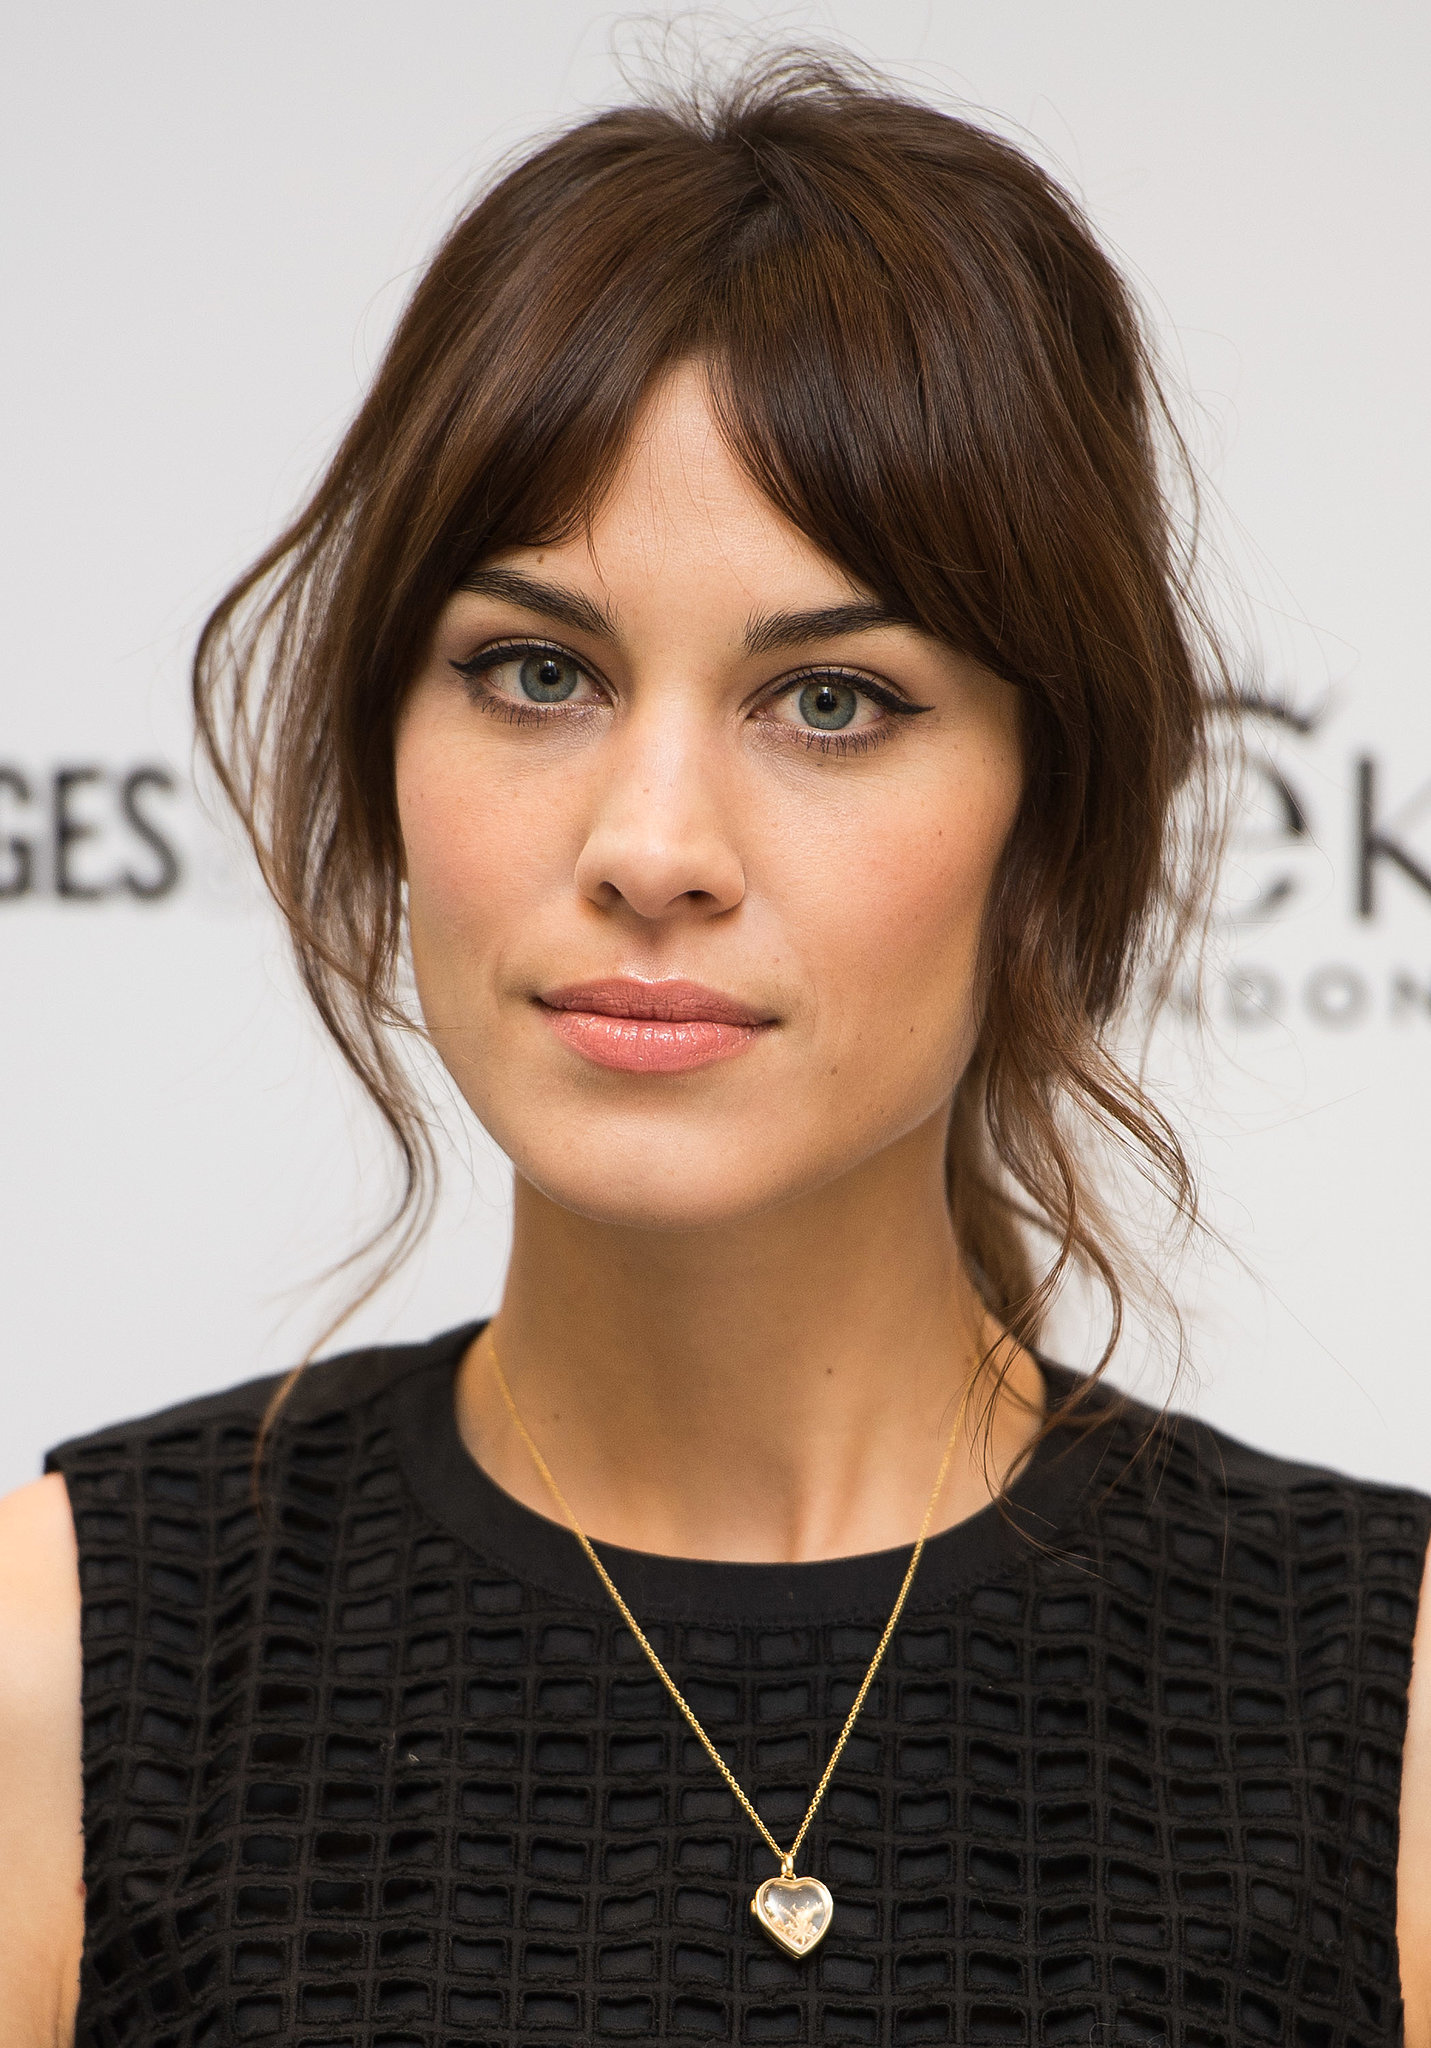 How Does Alexa Chung Keep Her Fringe Not Greasy